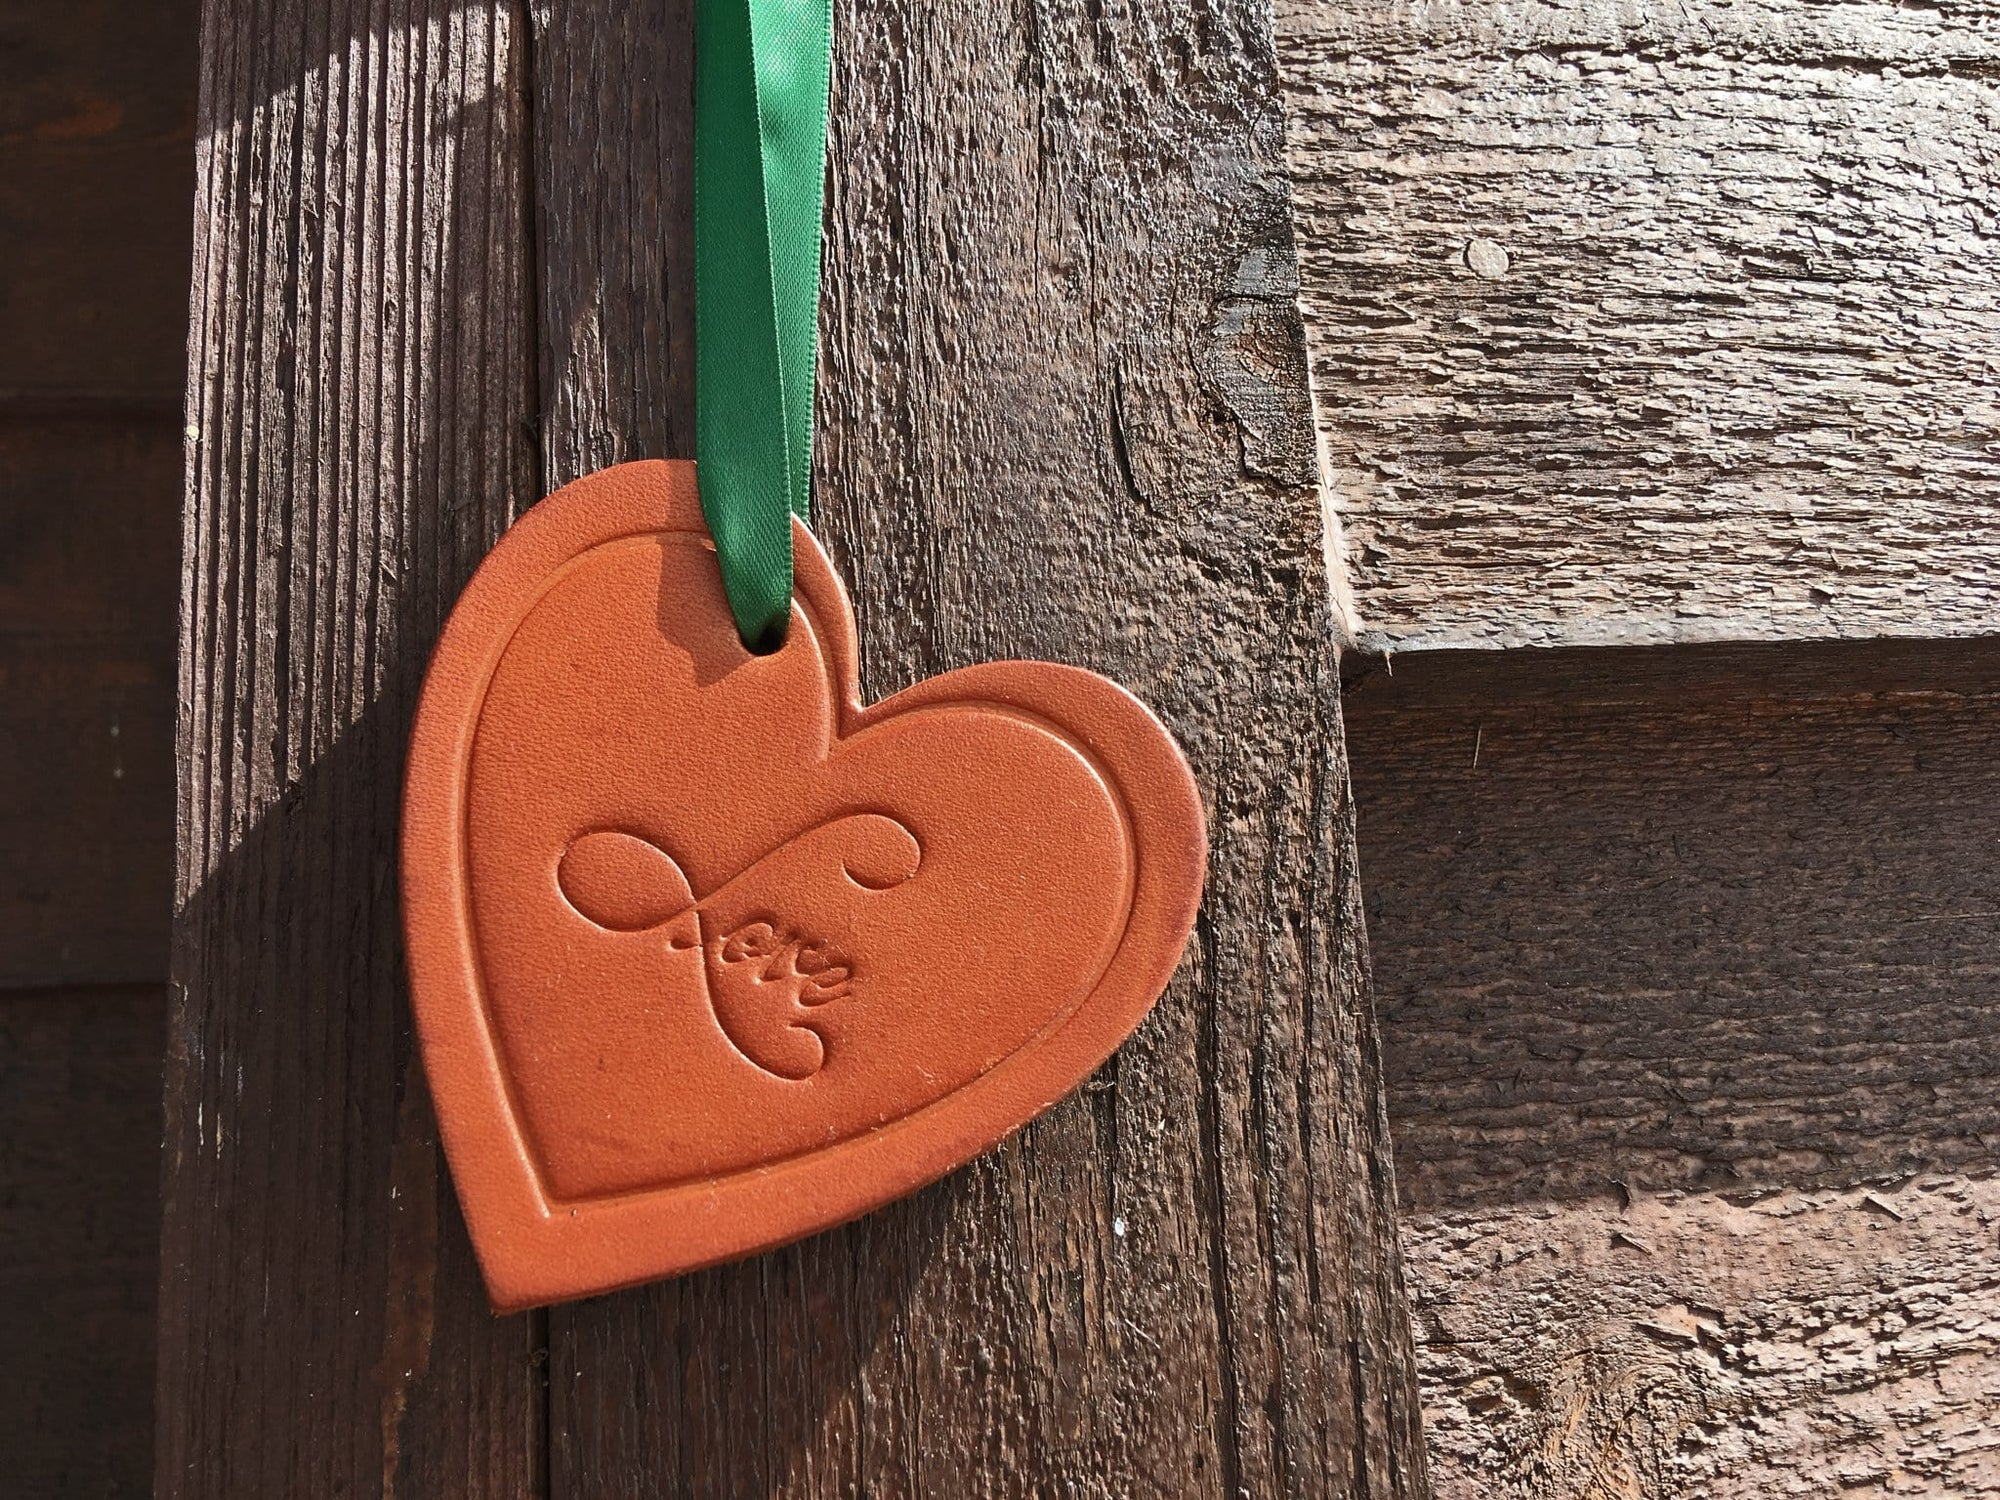 3rd anniversary gift leather heart ornament.